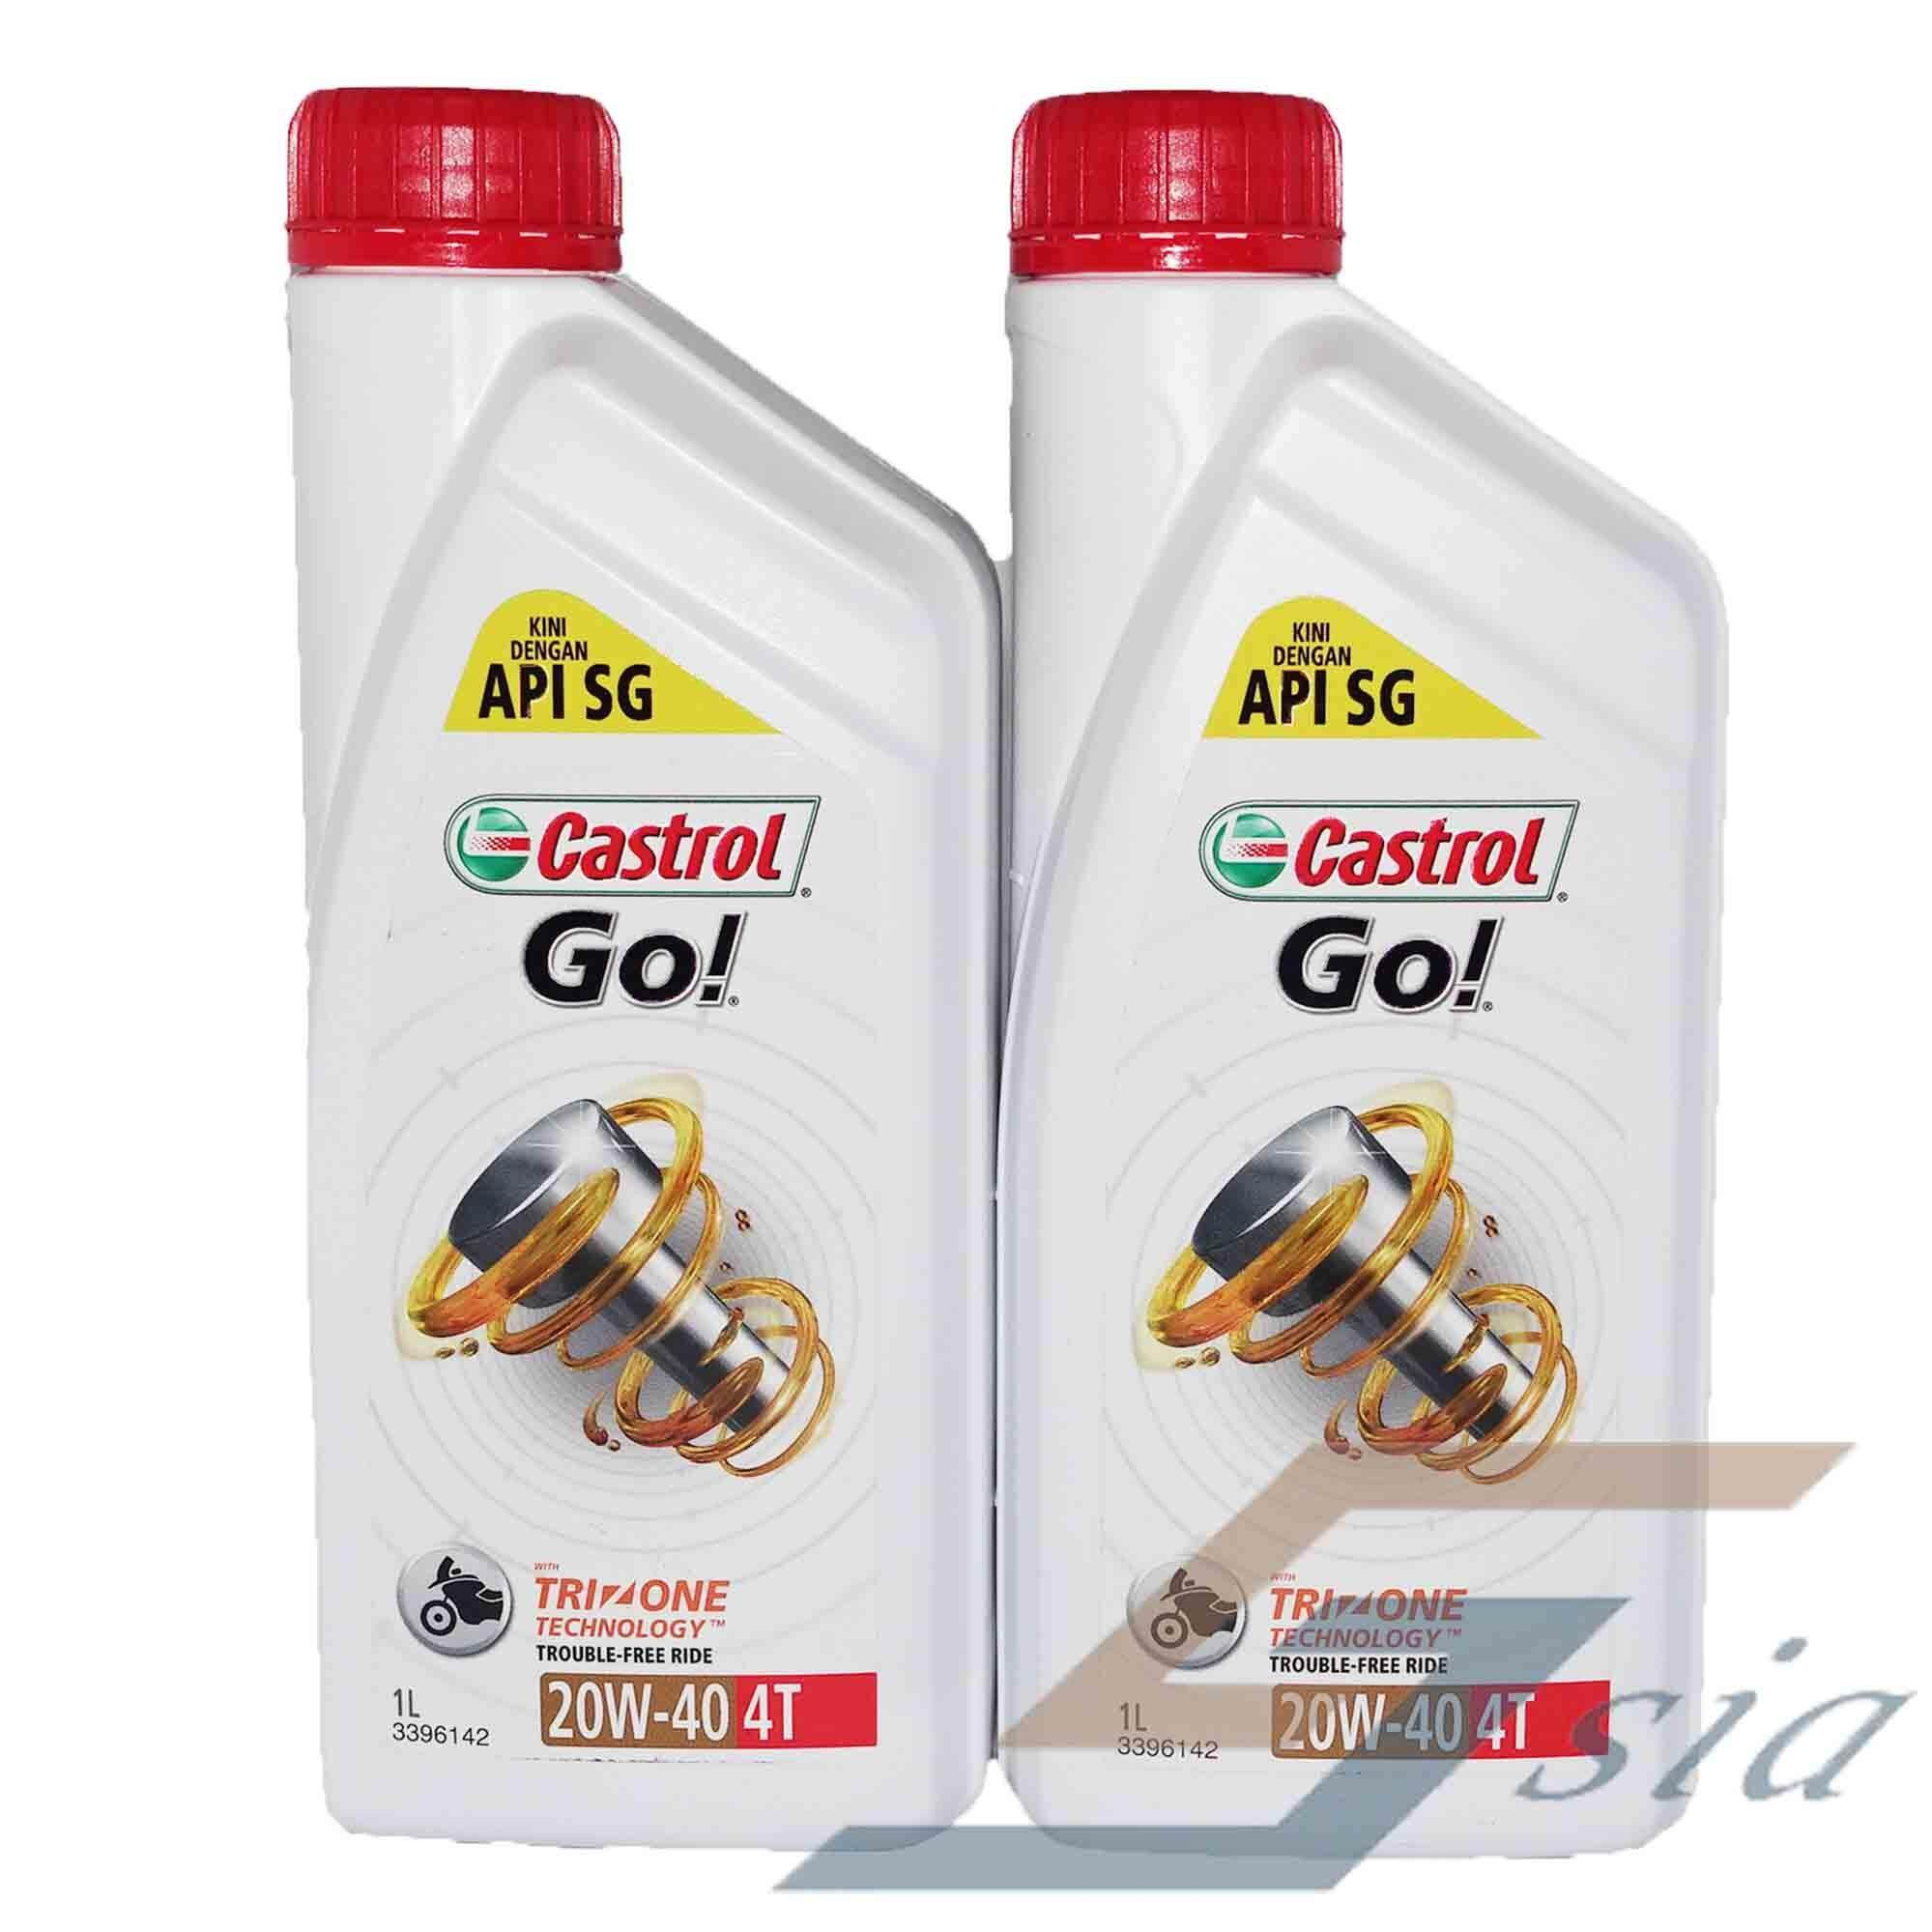 Castrol Engine Oil for the Best Price in Malaysia